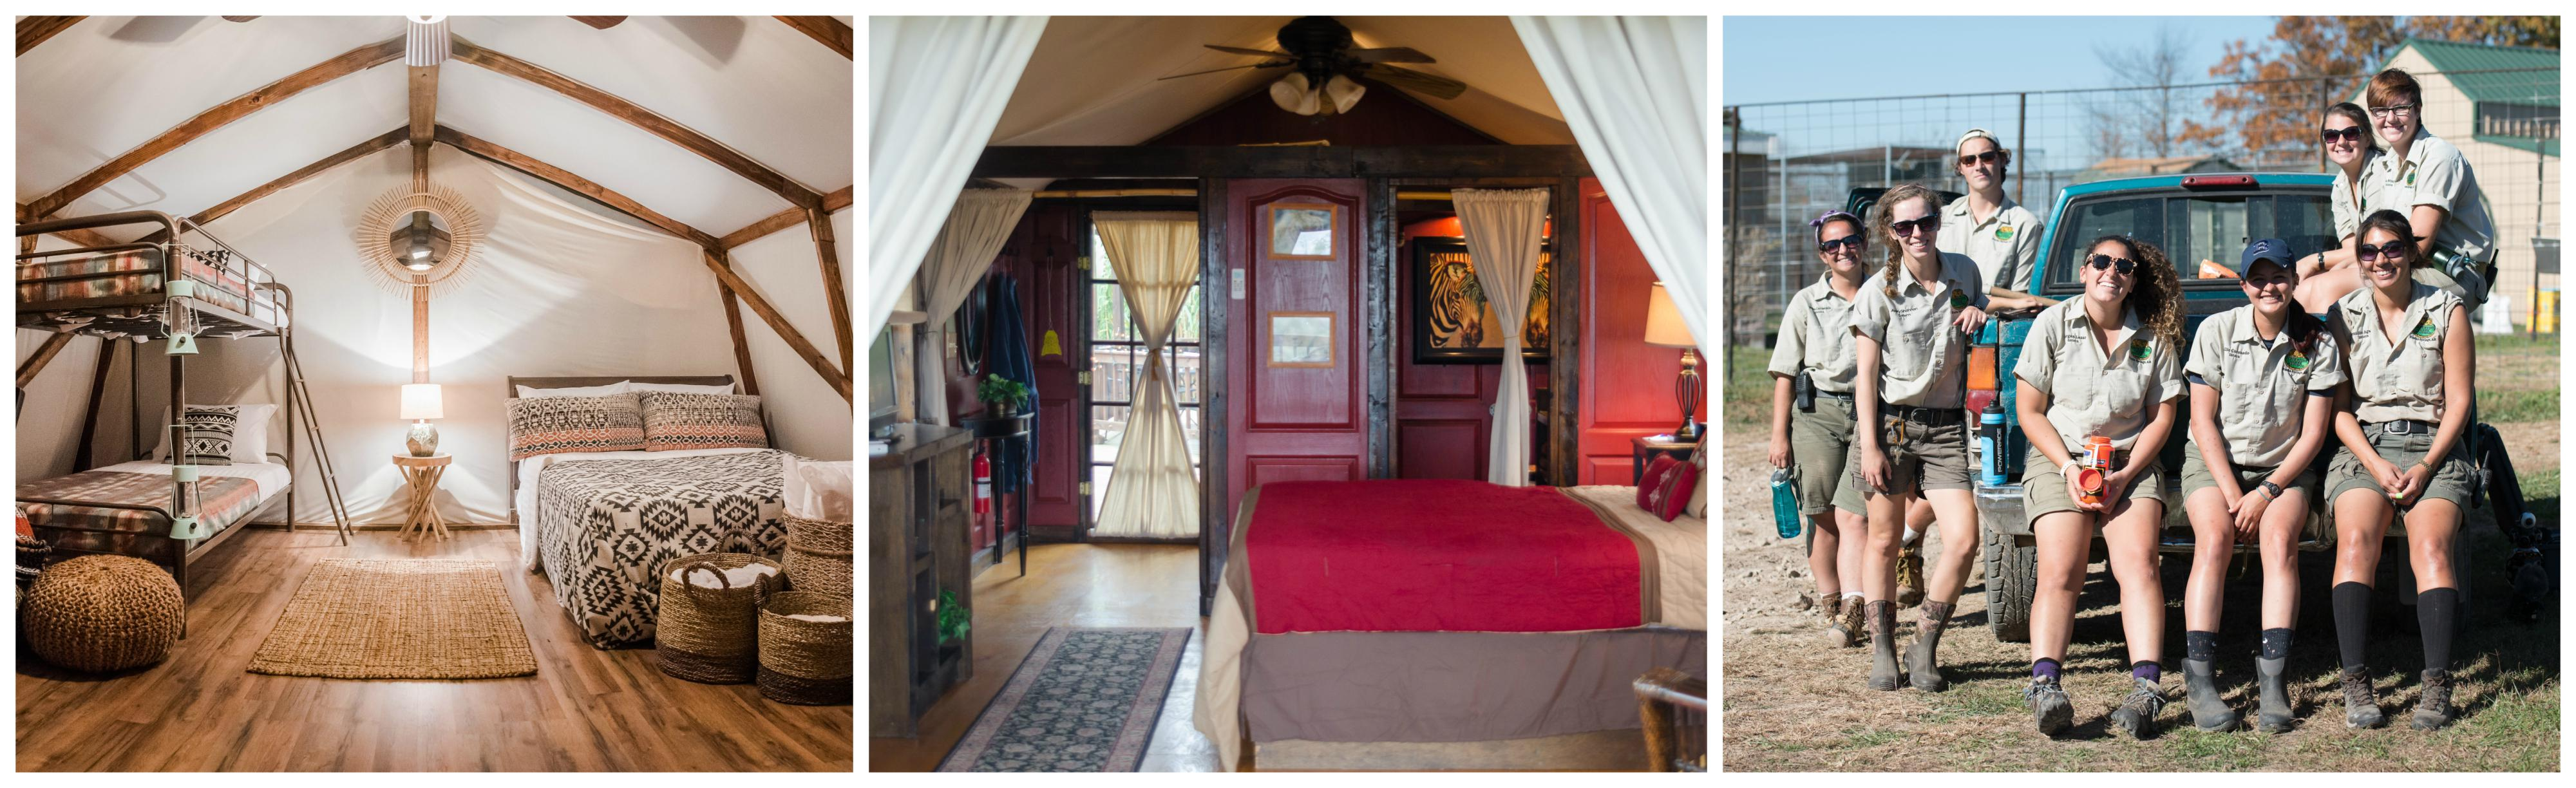 For those looking for a taste of Africa in the Ozarks, Turpentine Creek offers safari tents that sleep up to four.